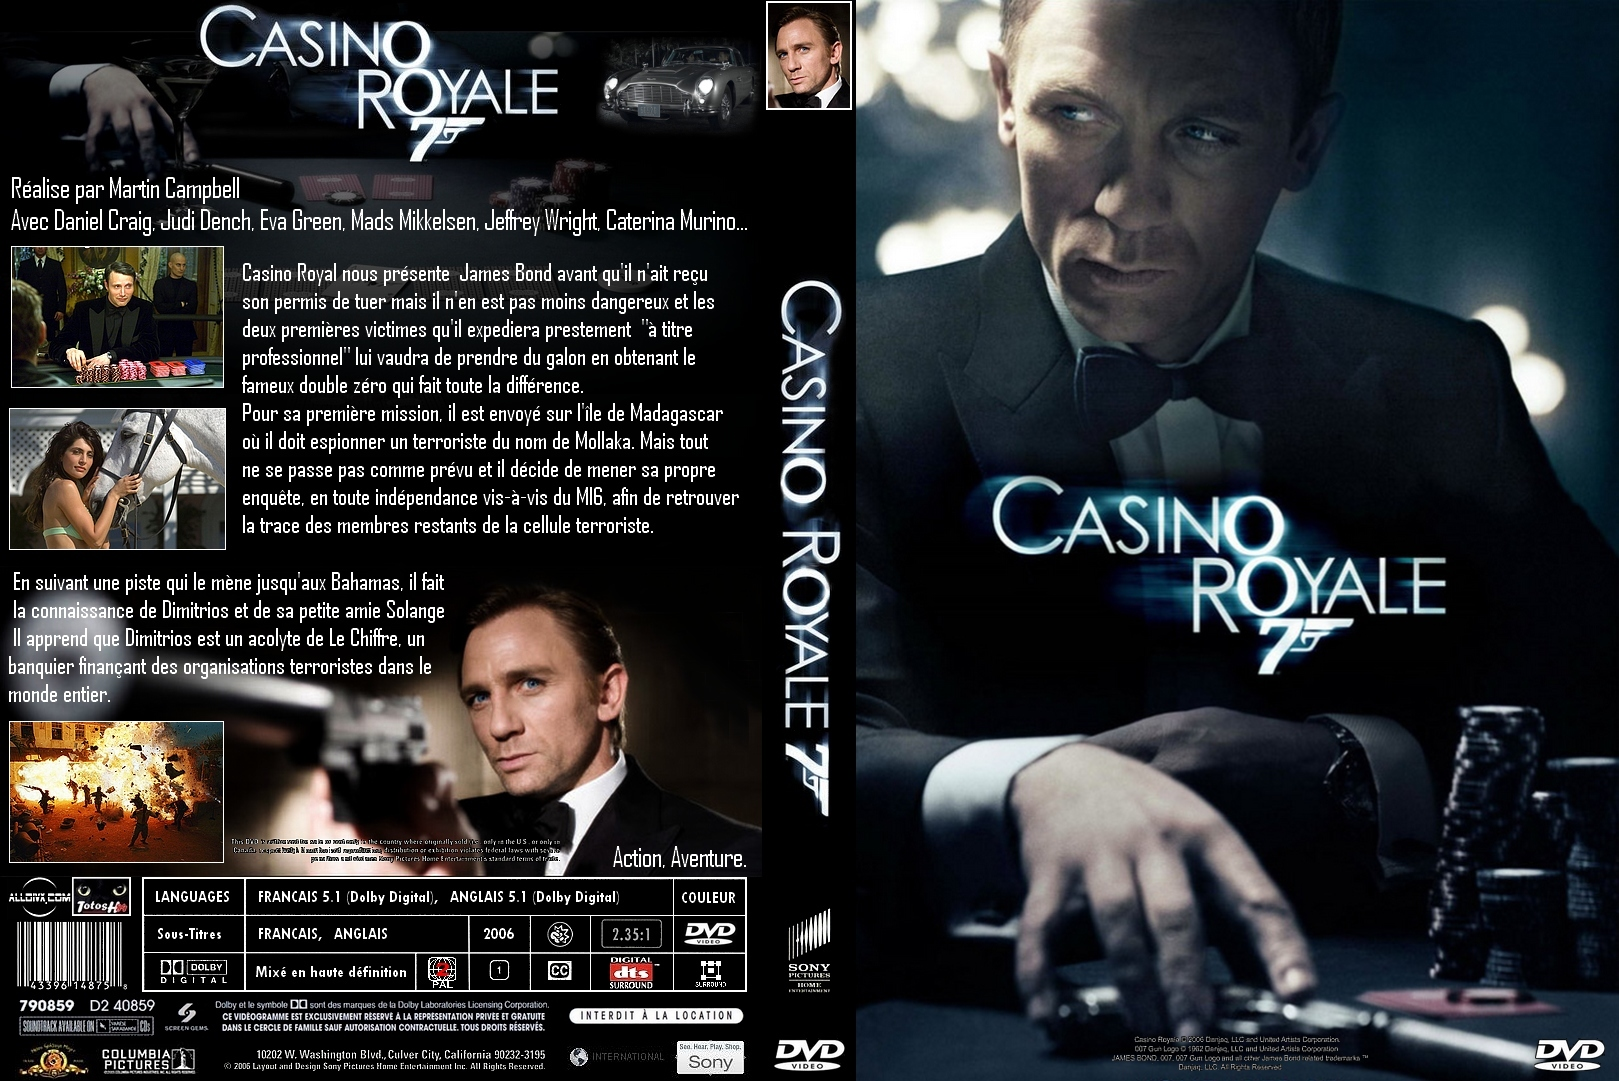 casino royale 2006 online book of fra